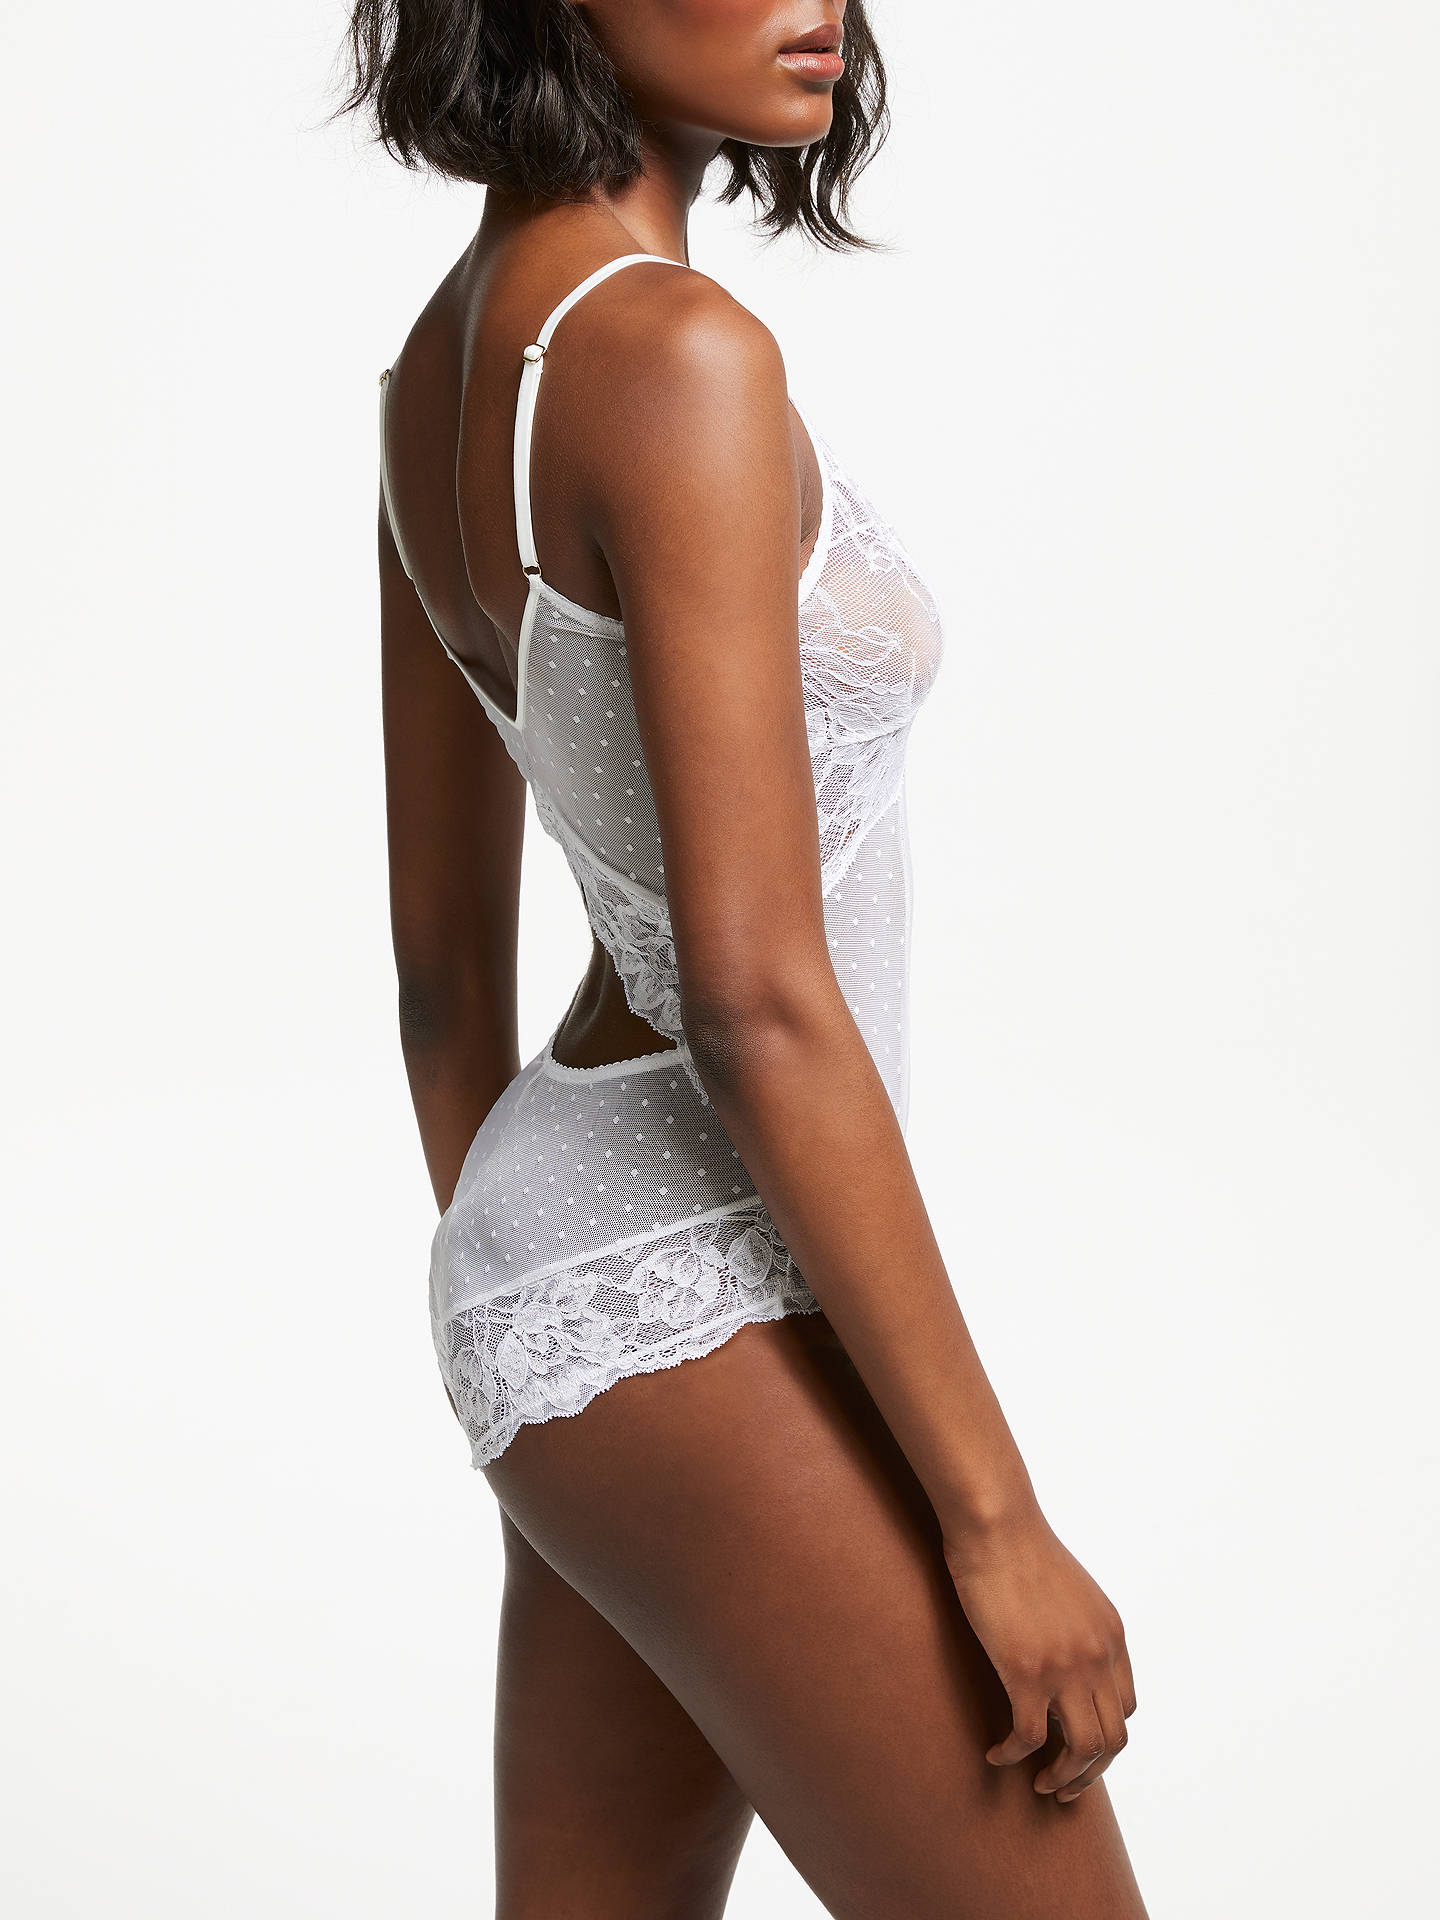 BuyAND/OR Arabella Lace Body, White, S Online at johnlewis.com